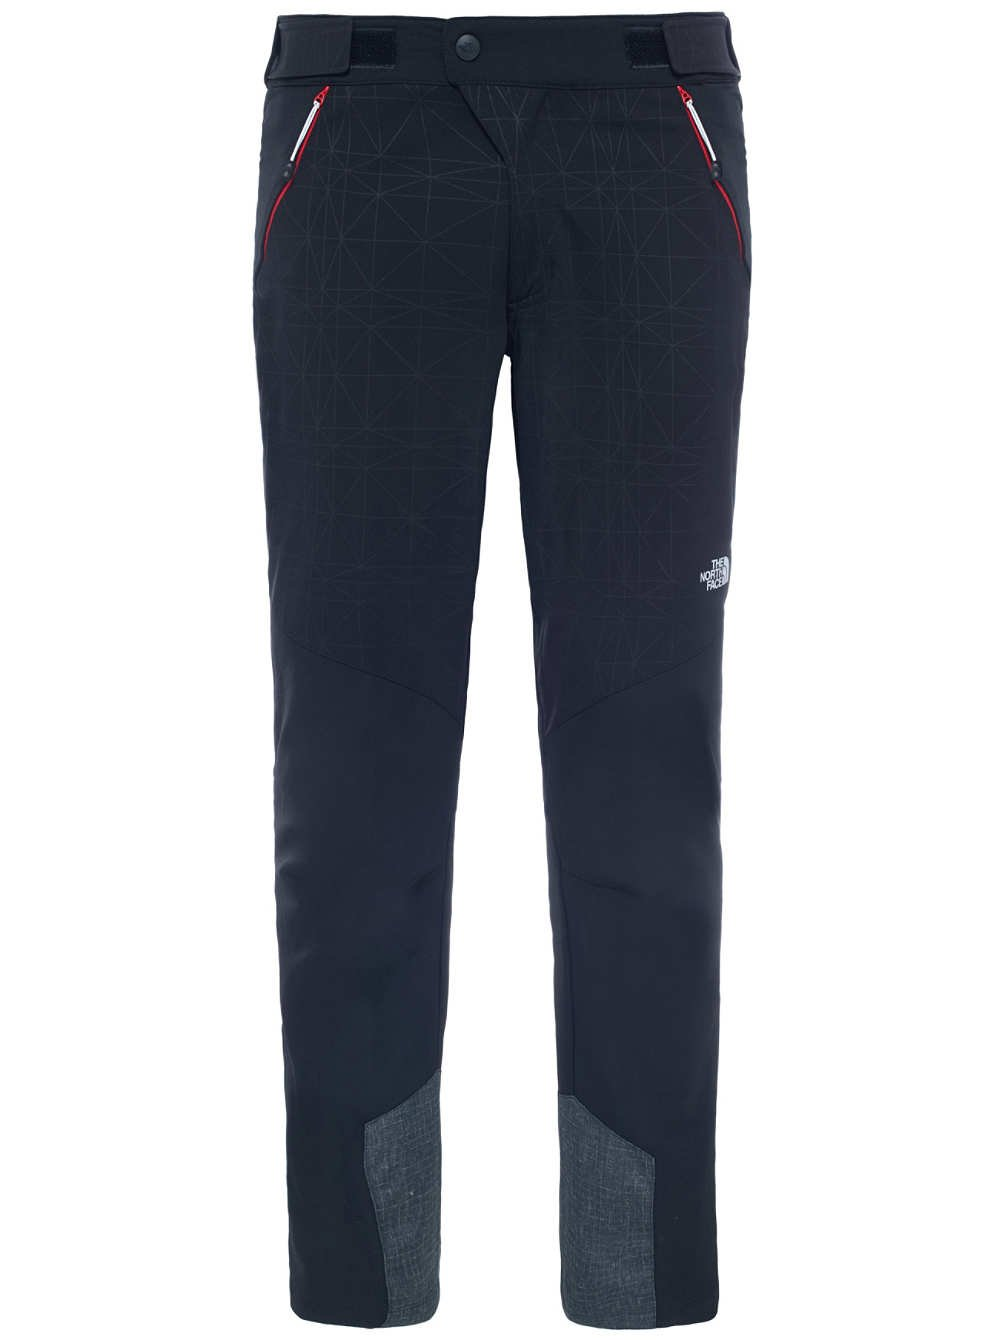 THE NORTH FACE Herren M Never Stop Touring Pant Softshellhose